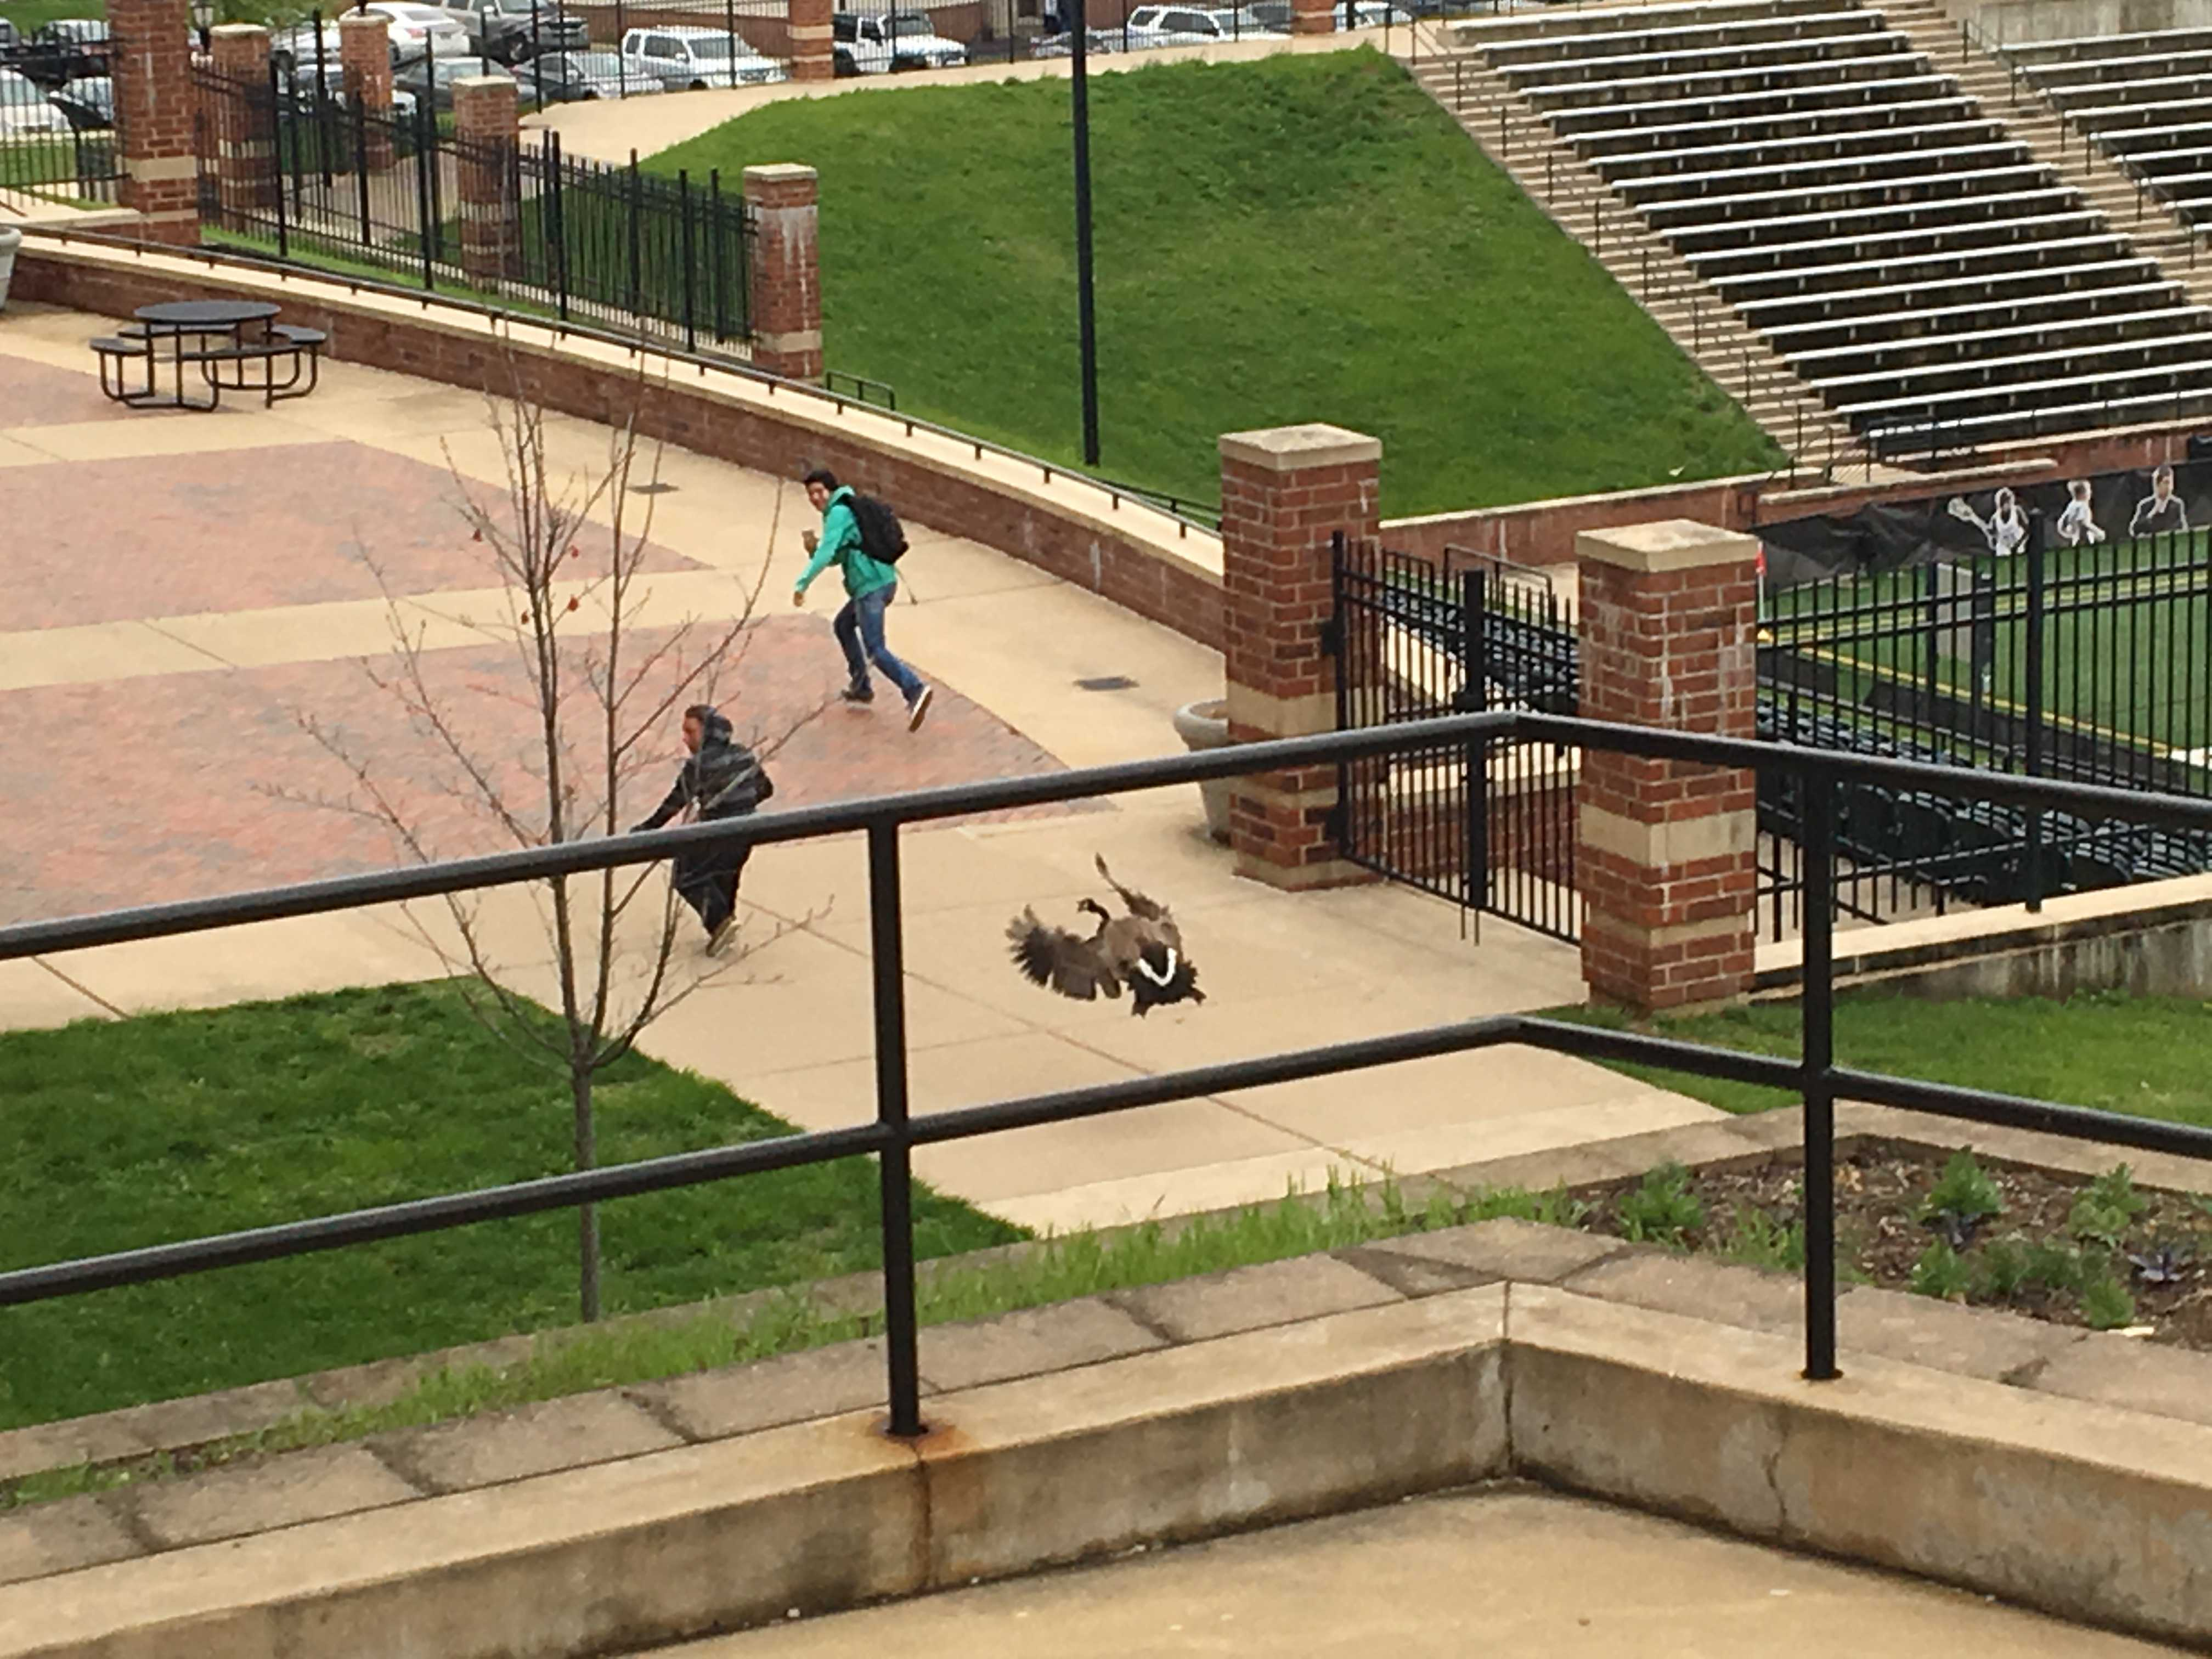 Students run away while being chased by a goose at the back of spellman.